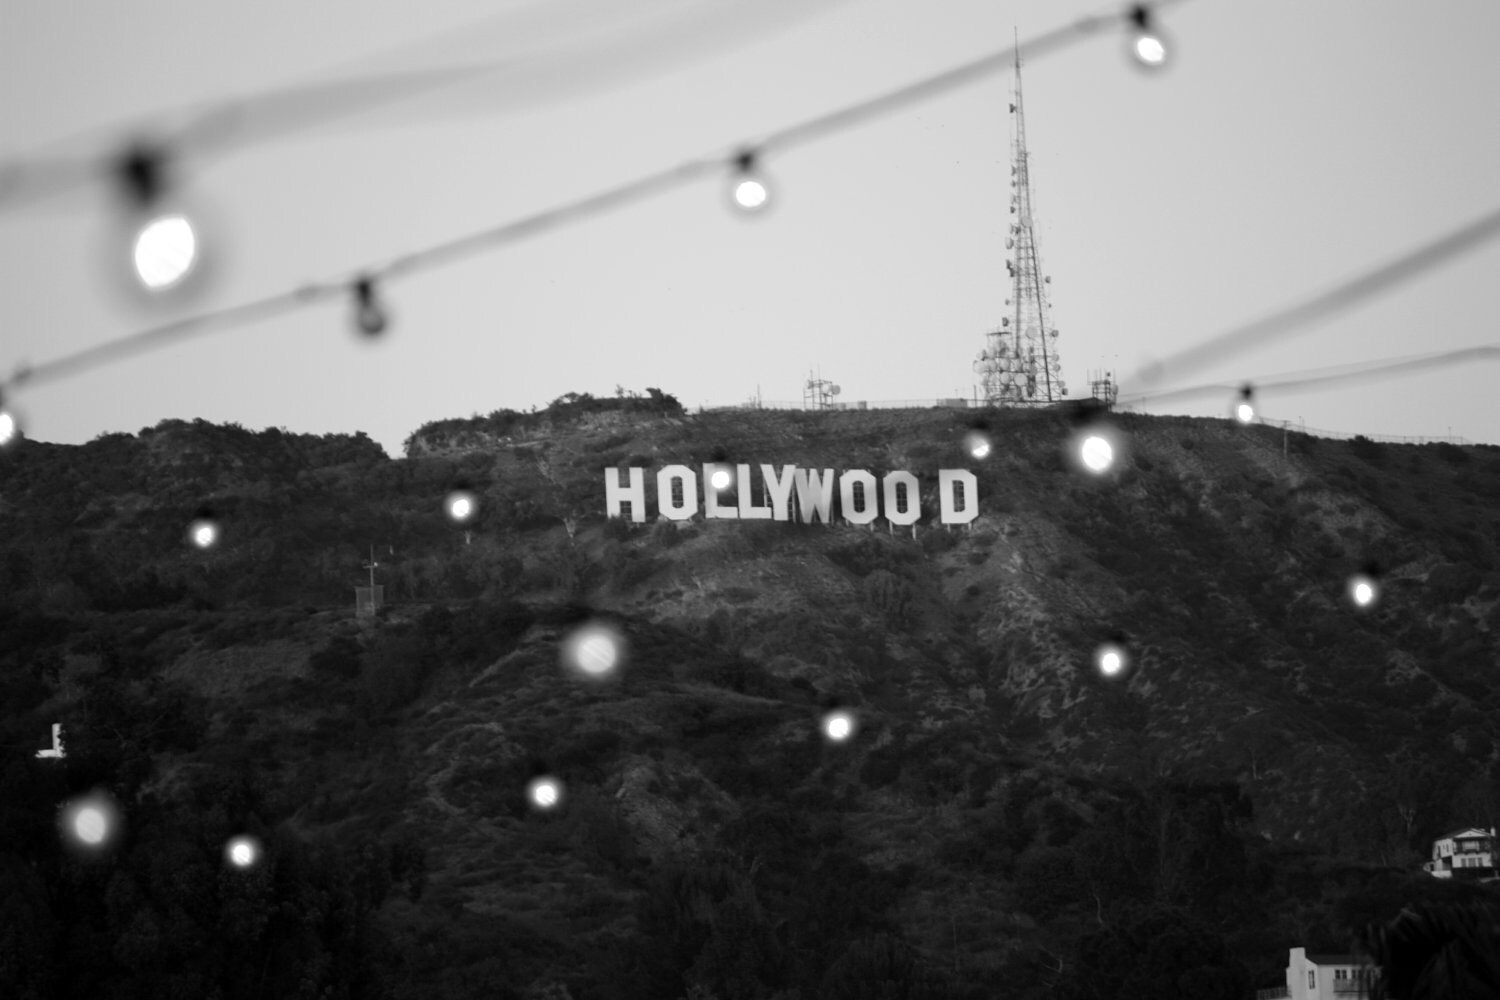 Hollywood Sign Black And White Photograph 16x20